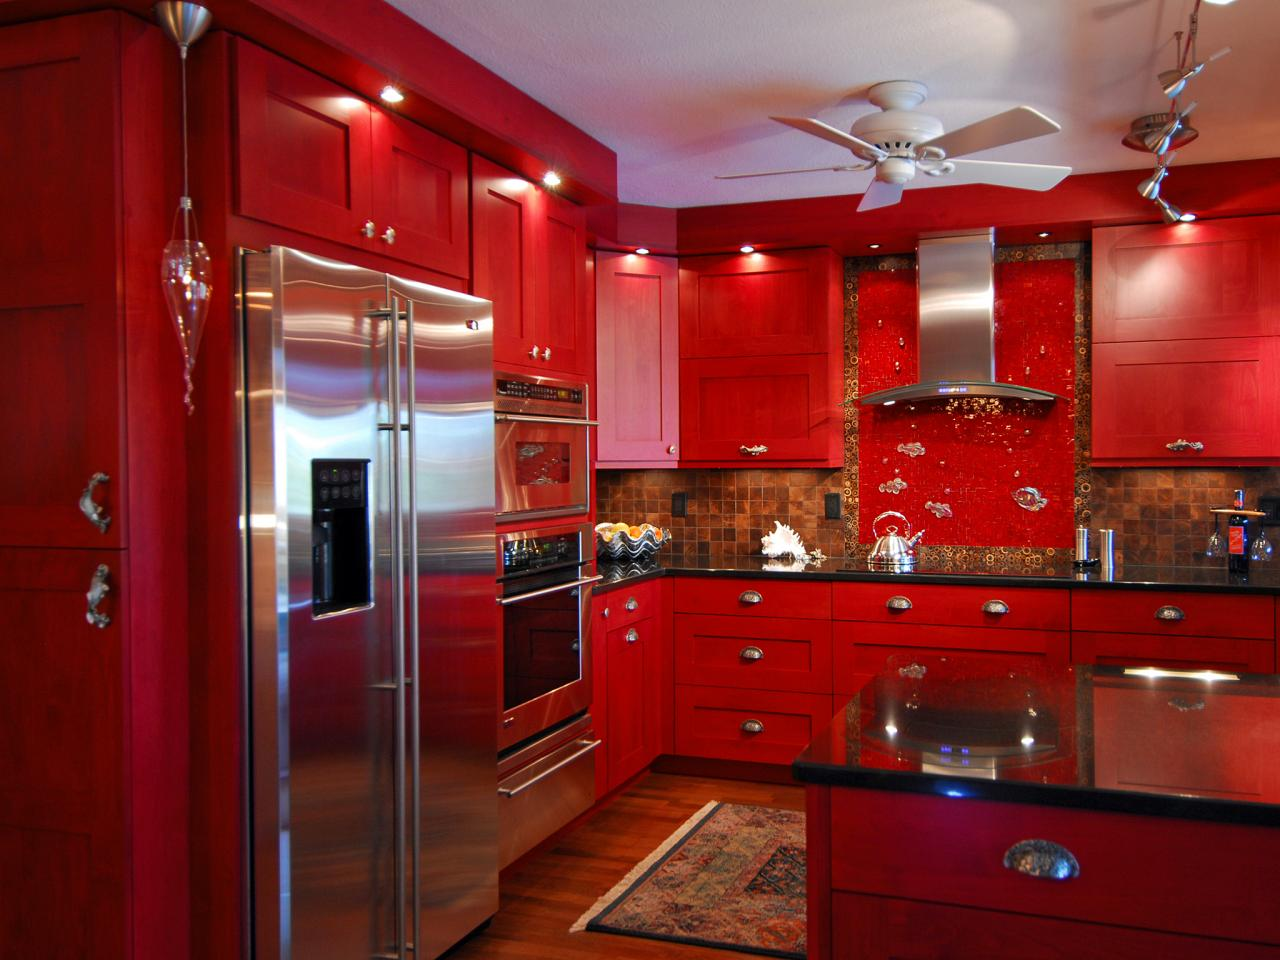 Painting kitchen cabinets pictures options tips ideas for Painting kitchen cabinets